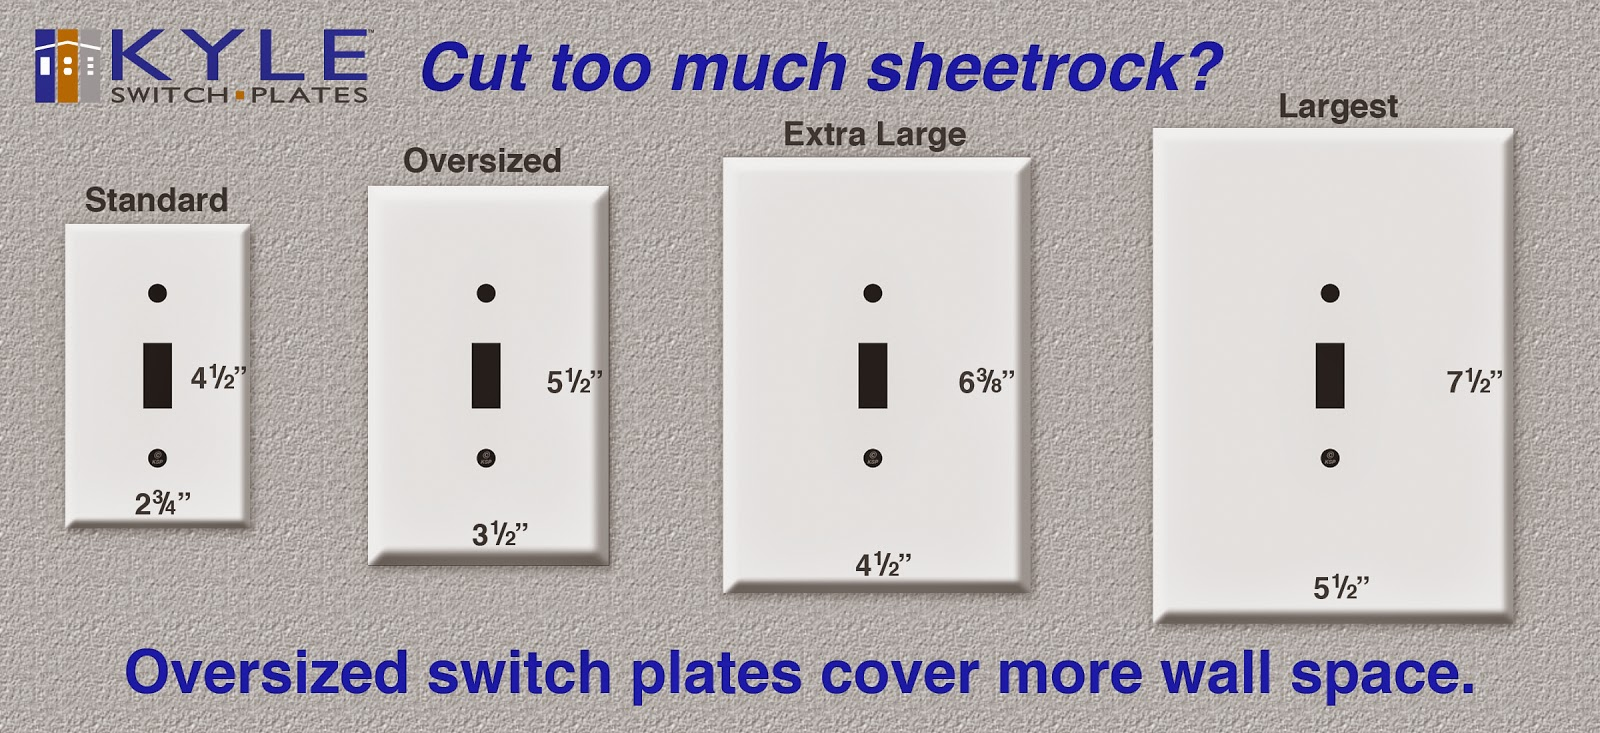 Oversized Light Switch Covers Kyle Switch Plates 2014